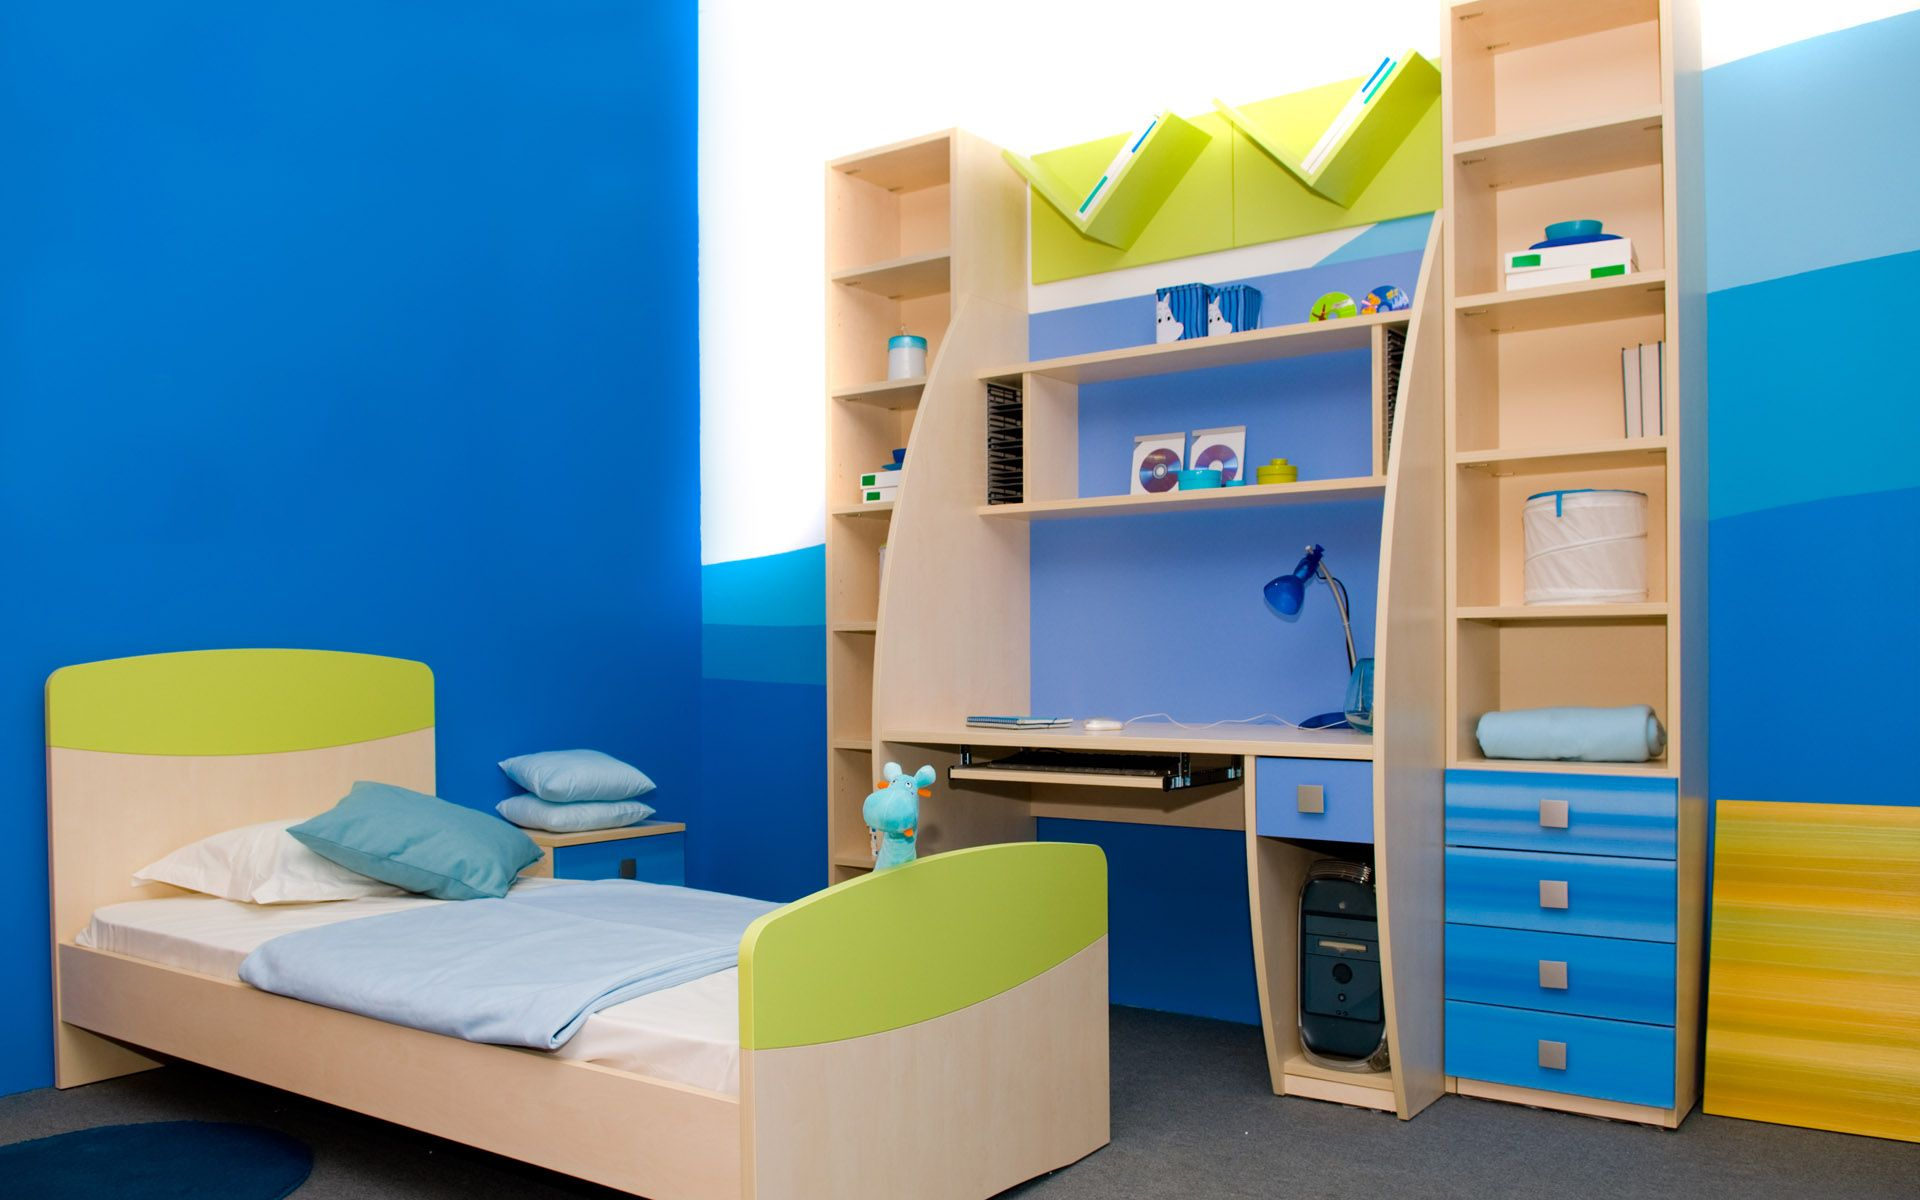 inspiration kids bedroom design ideas. Download kids Room wallpapers design interior  Free wallpaper Interior decoration